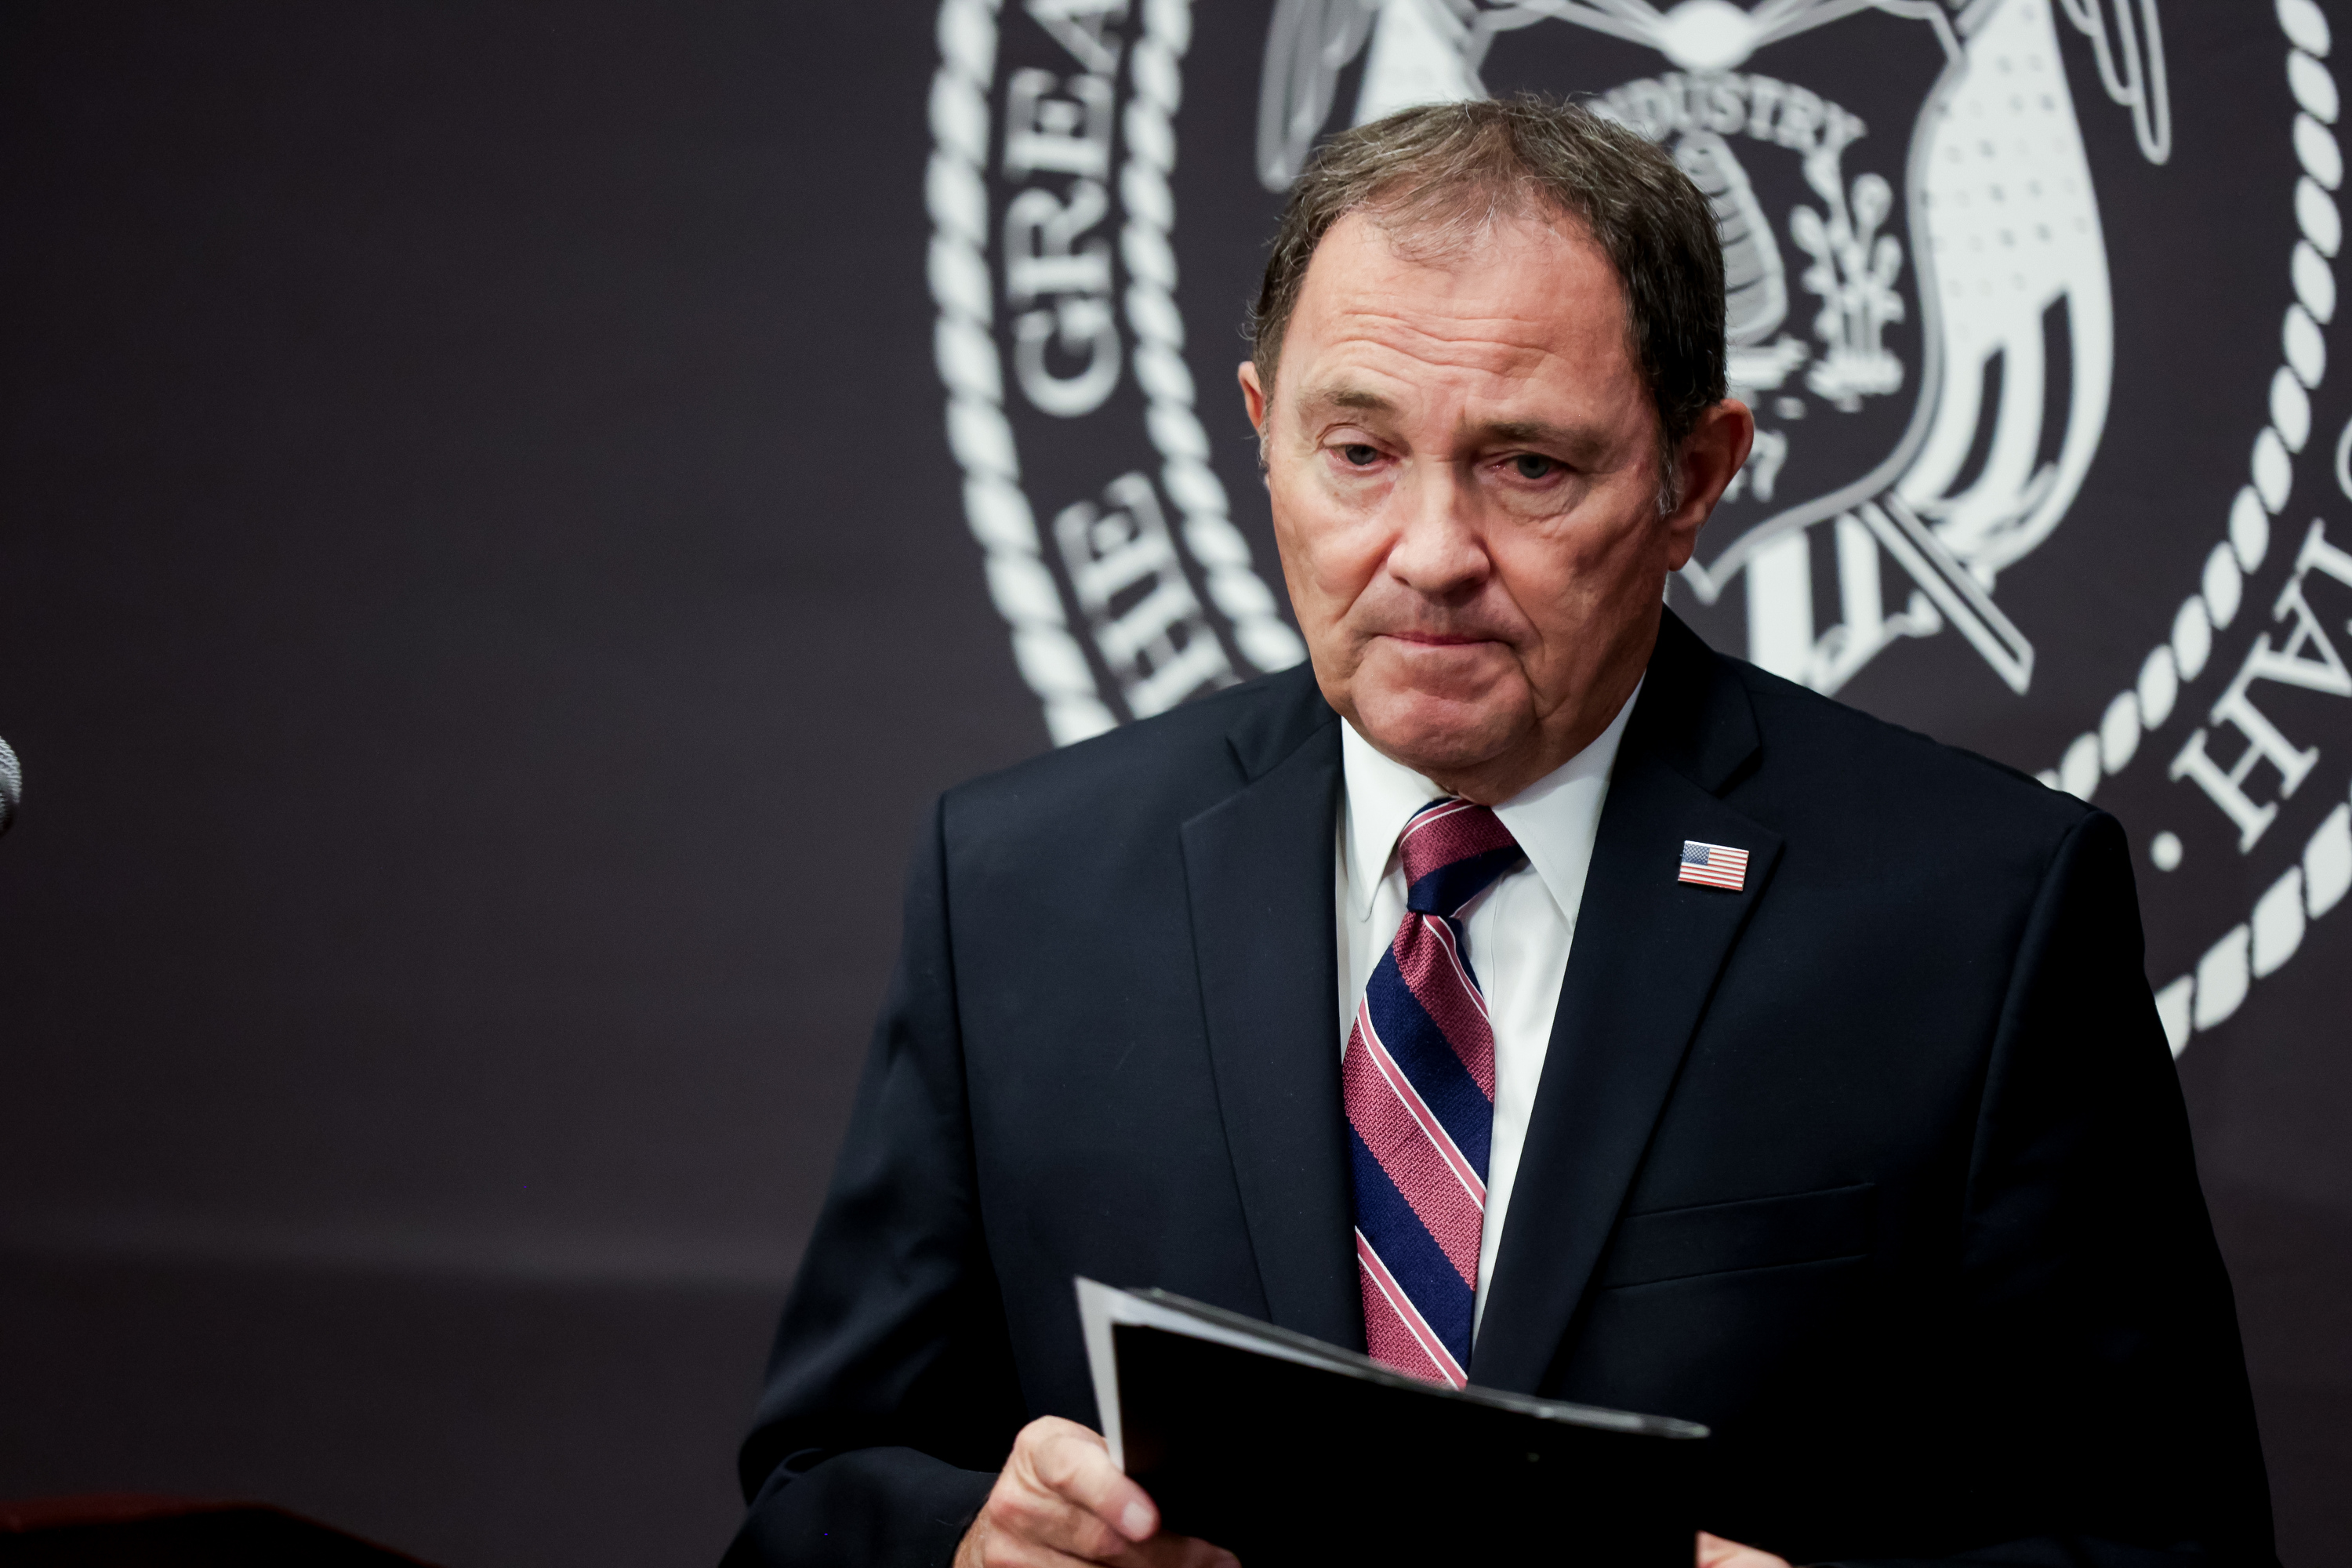 Gov. Gary Herbert hands the podium off to state epidemiologist Dr. Angela Dunn, not pictured, during a COVID-19 briefing at the Capitol in Salt Lake City on Thursday, Oct. 29, 2020.